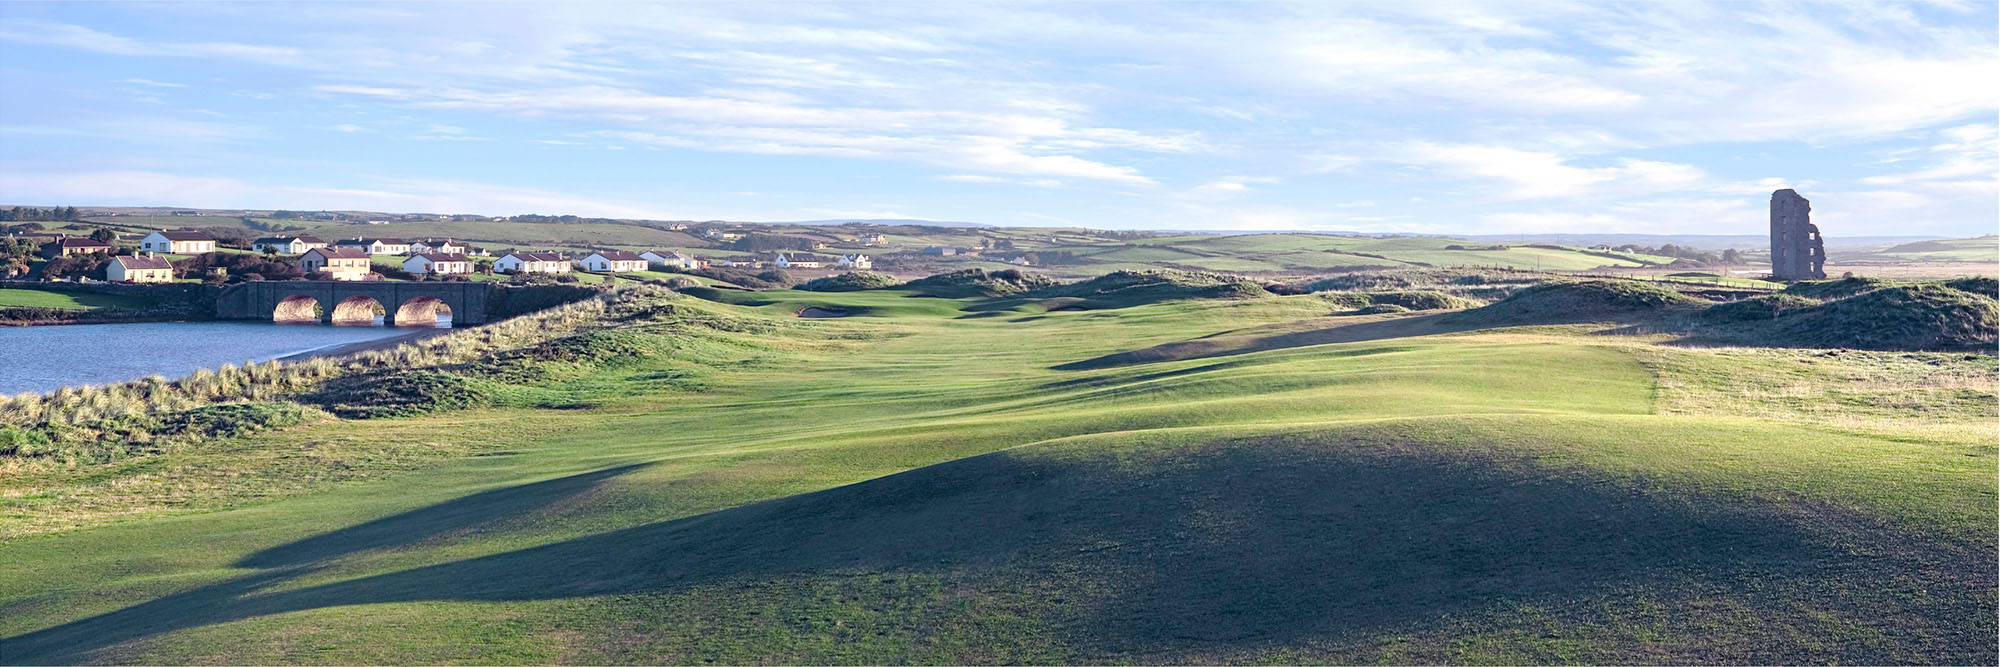 Golf Course Image - Lahinch No. 12